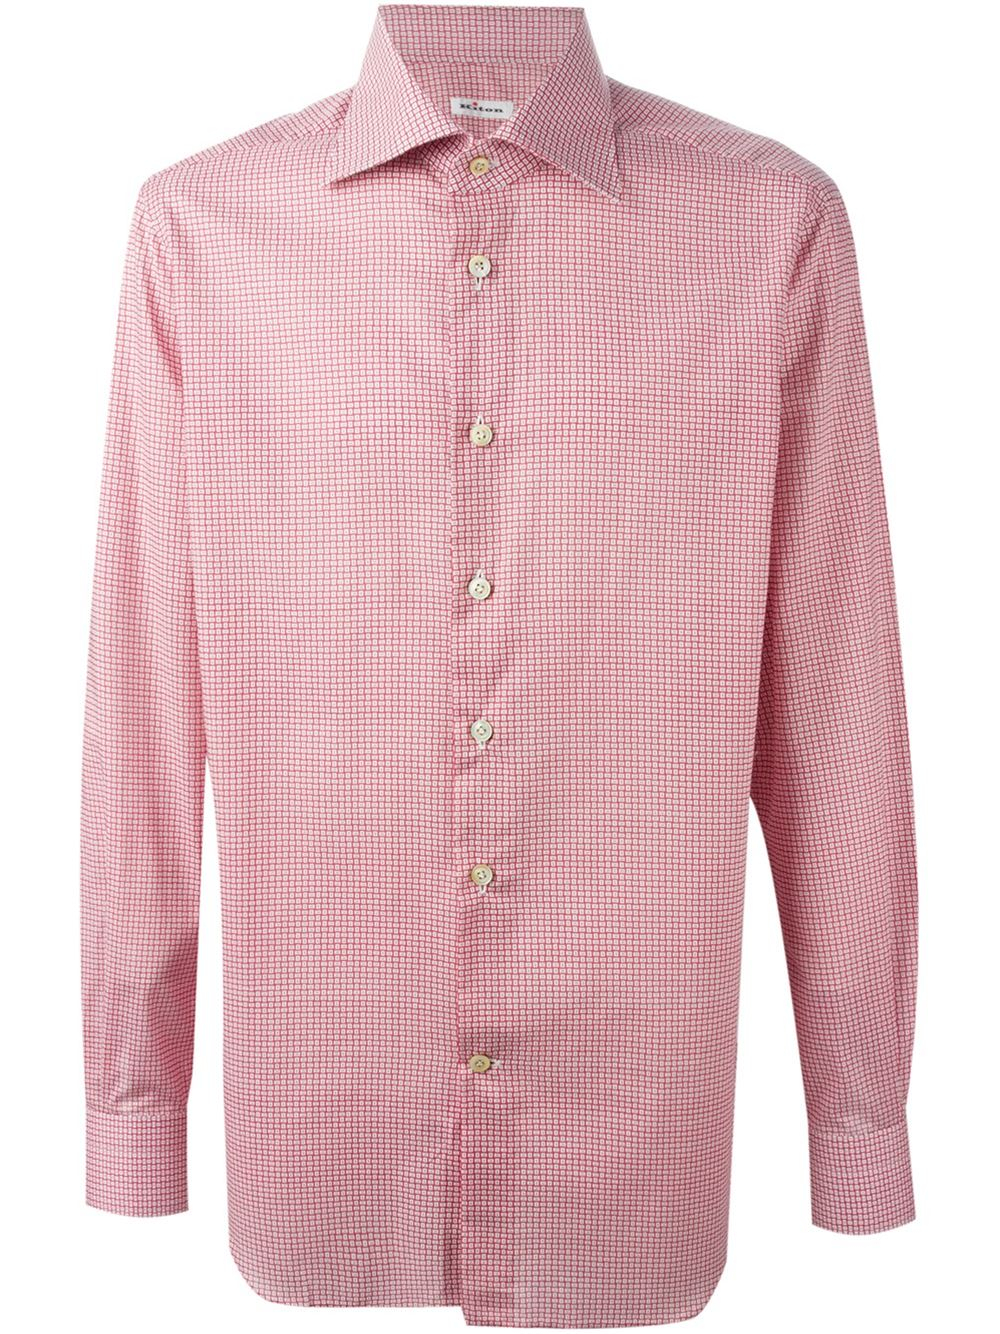 Kiton printed spread collar shirt in red for men lyst for What is a spread collar shirt